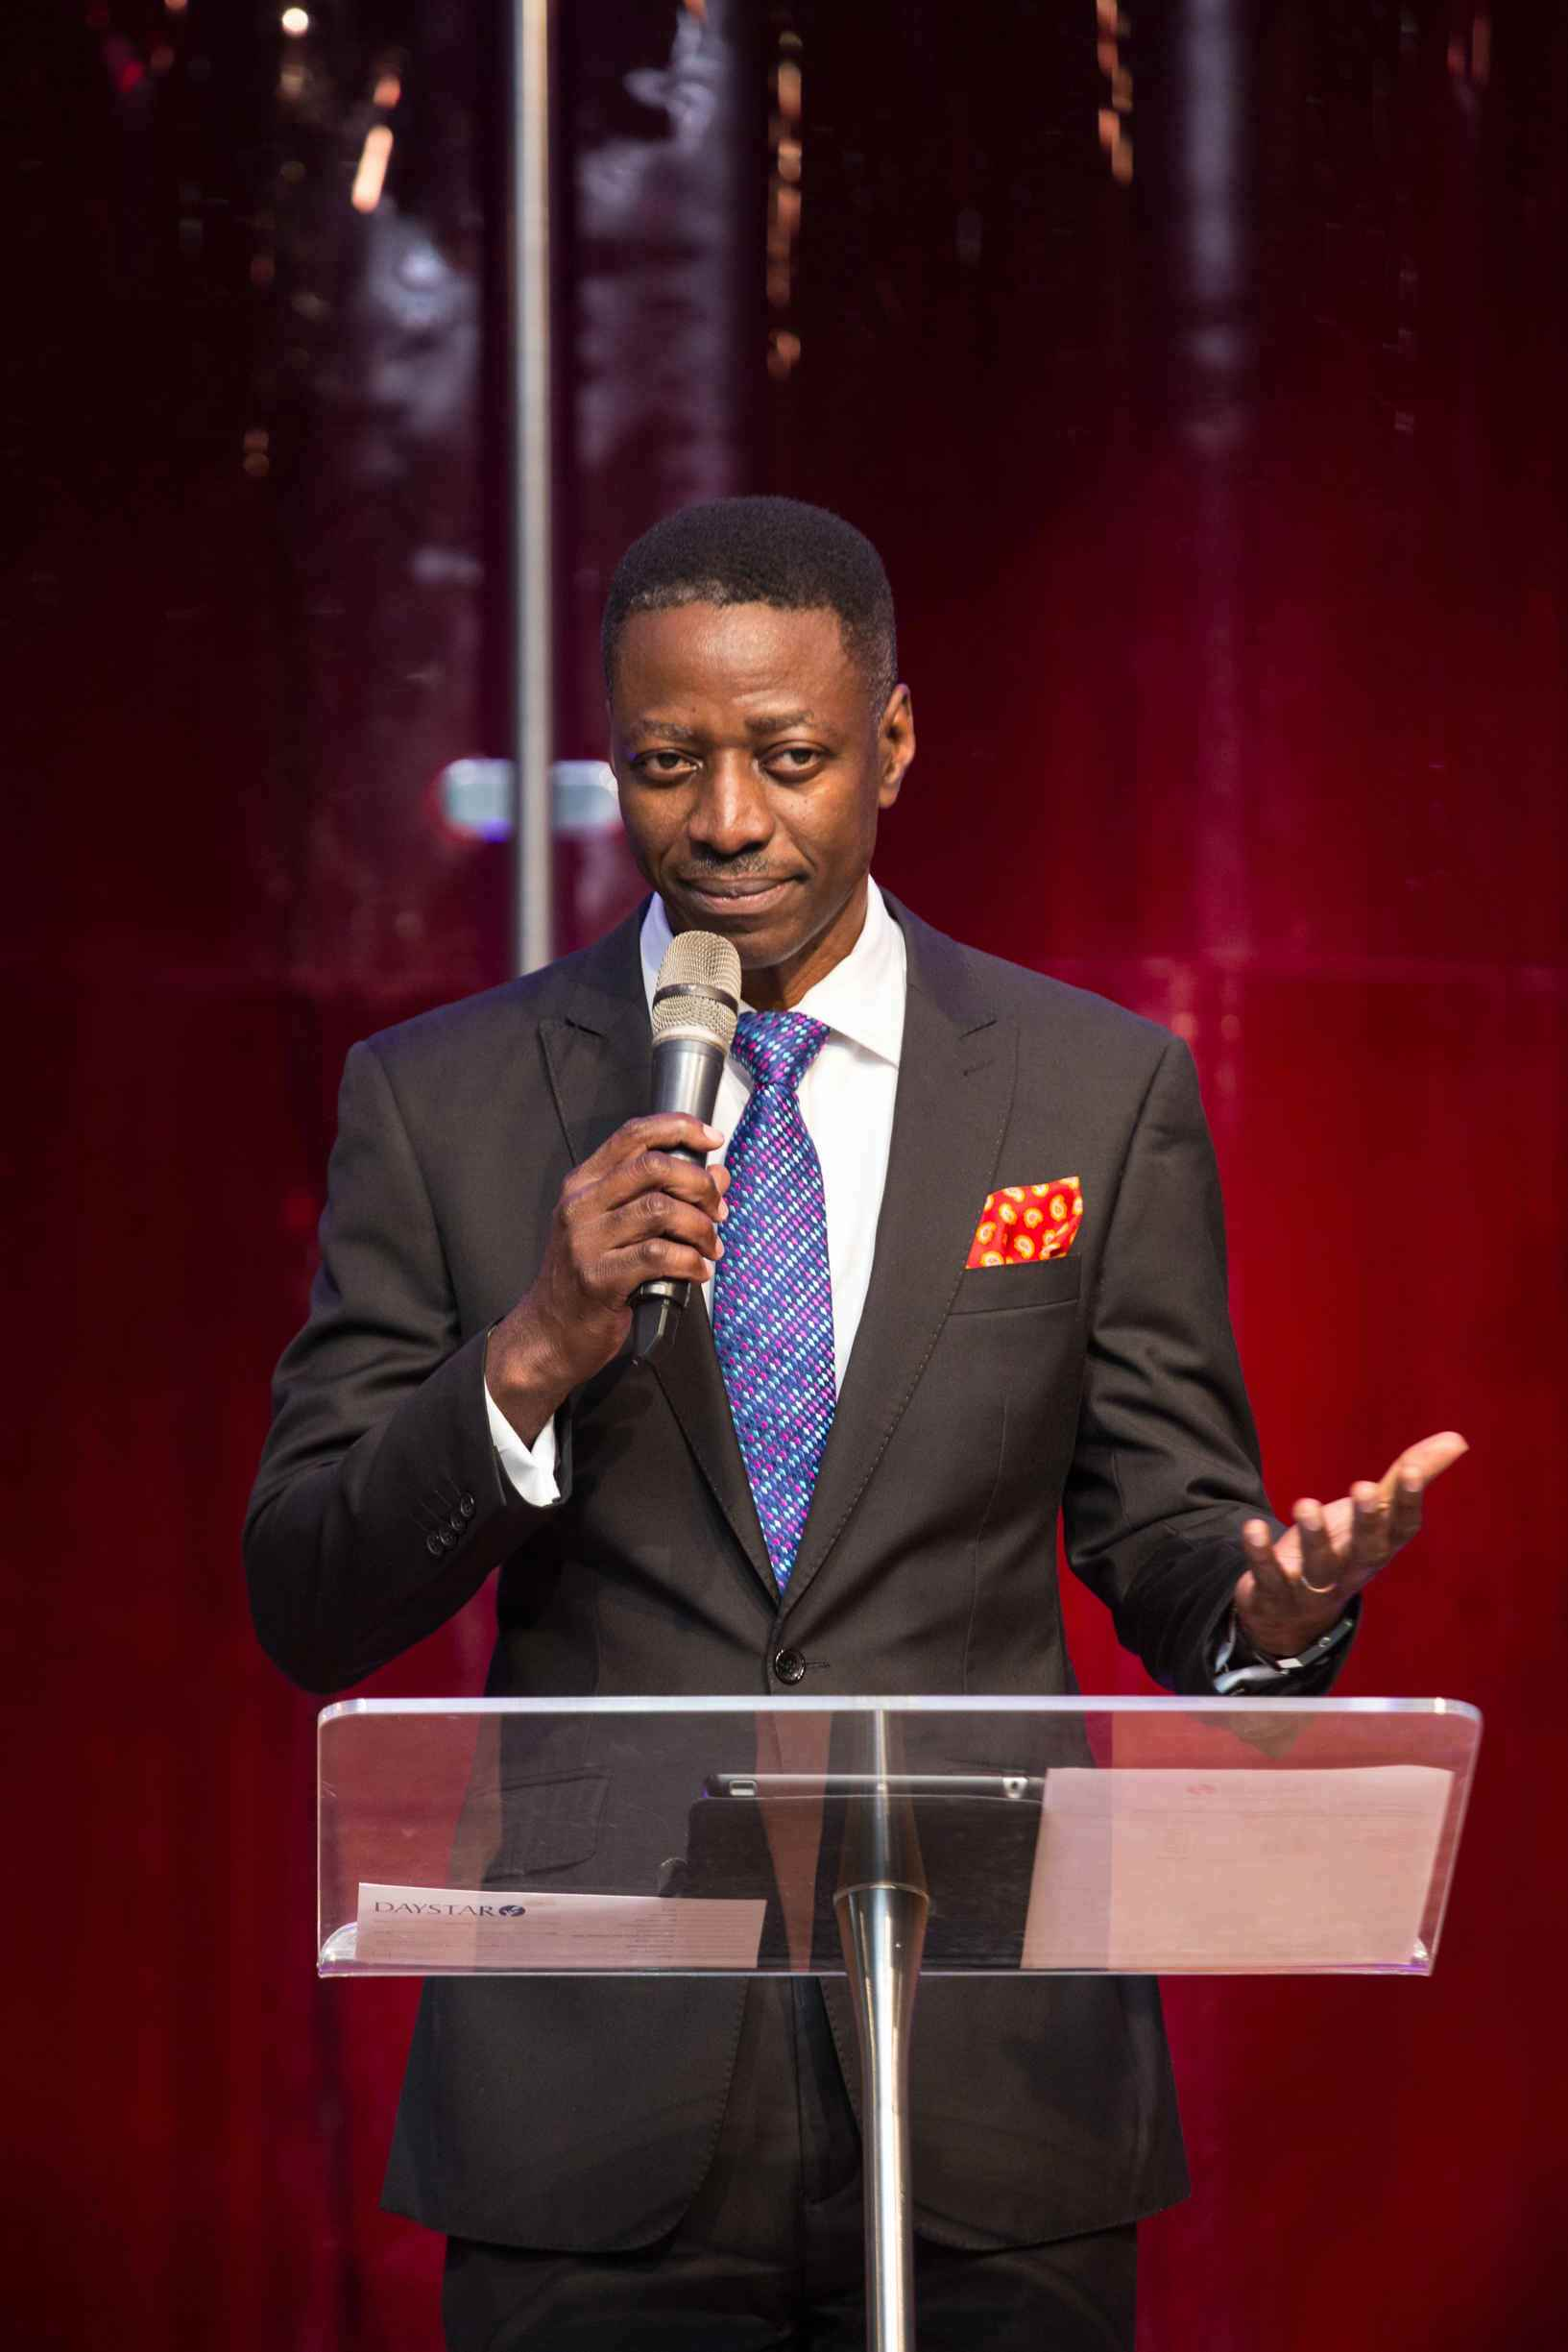 Pastor Sam Adeyemi's Tweets on Mental Health Issues Sparks